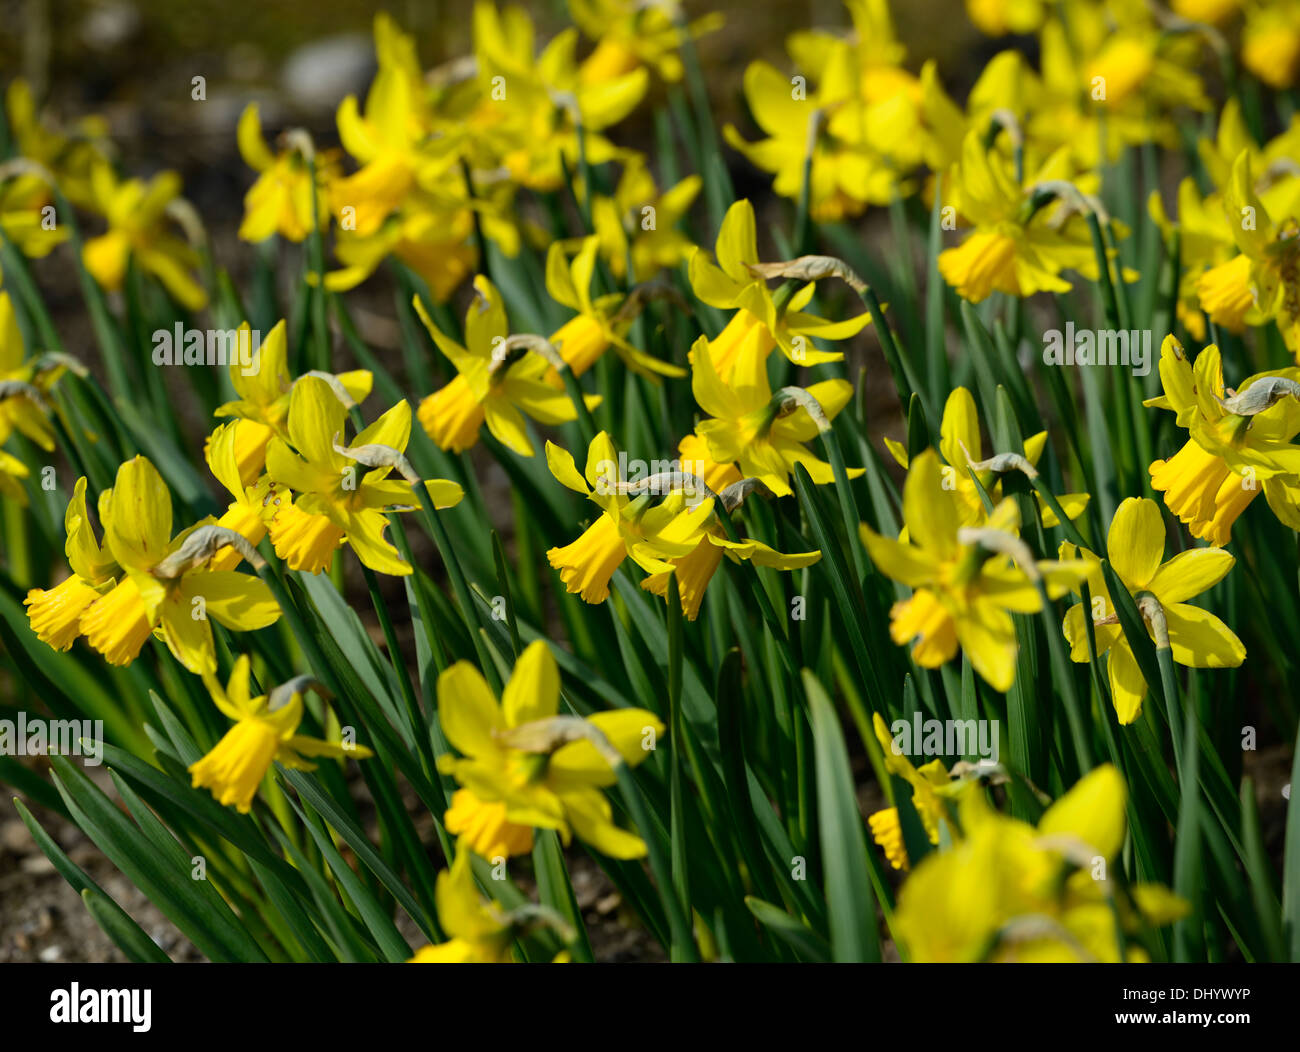 narcissus february gold dwarf cyclamineus Div 6 early hybrid yellow flower bloom blossom spring - Stock Image